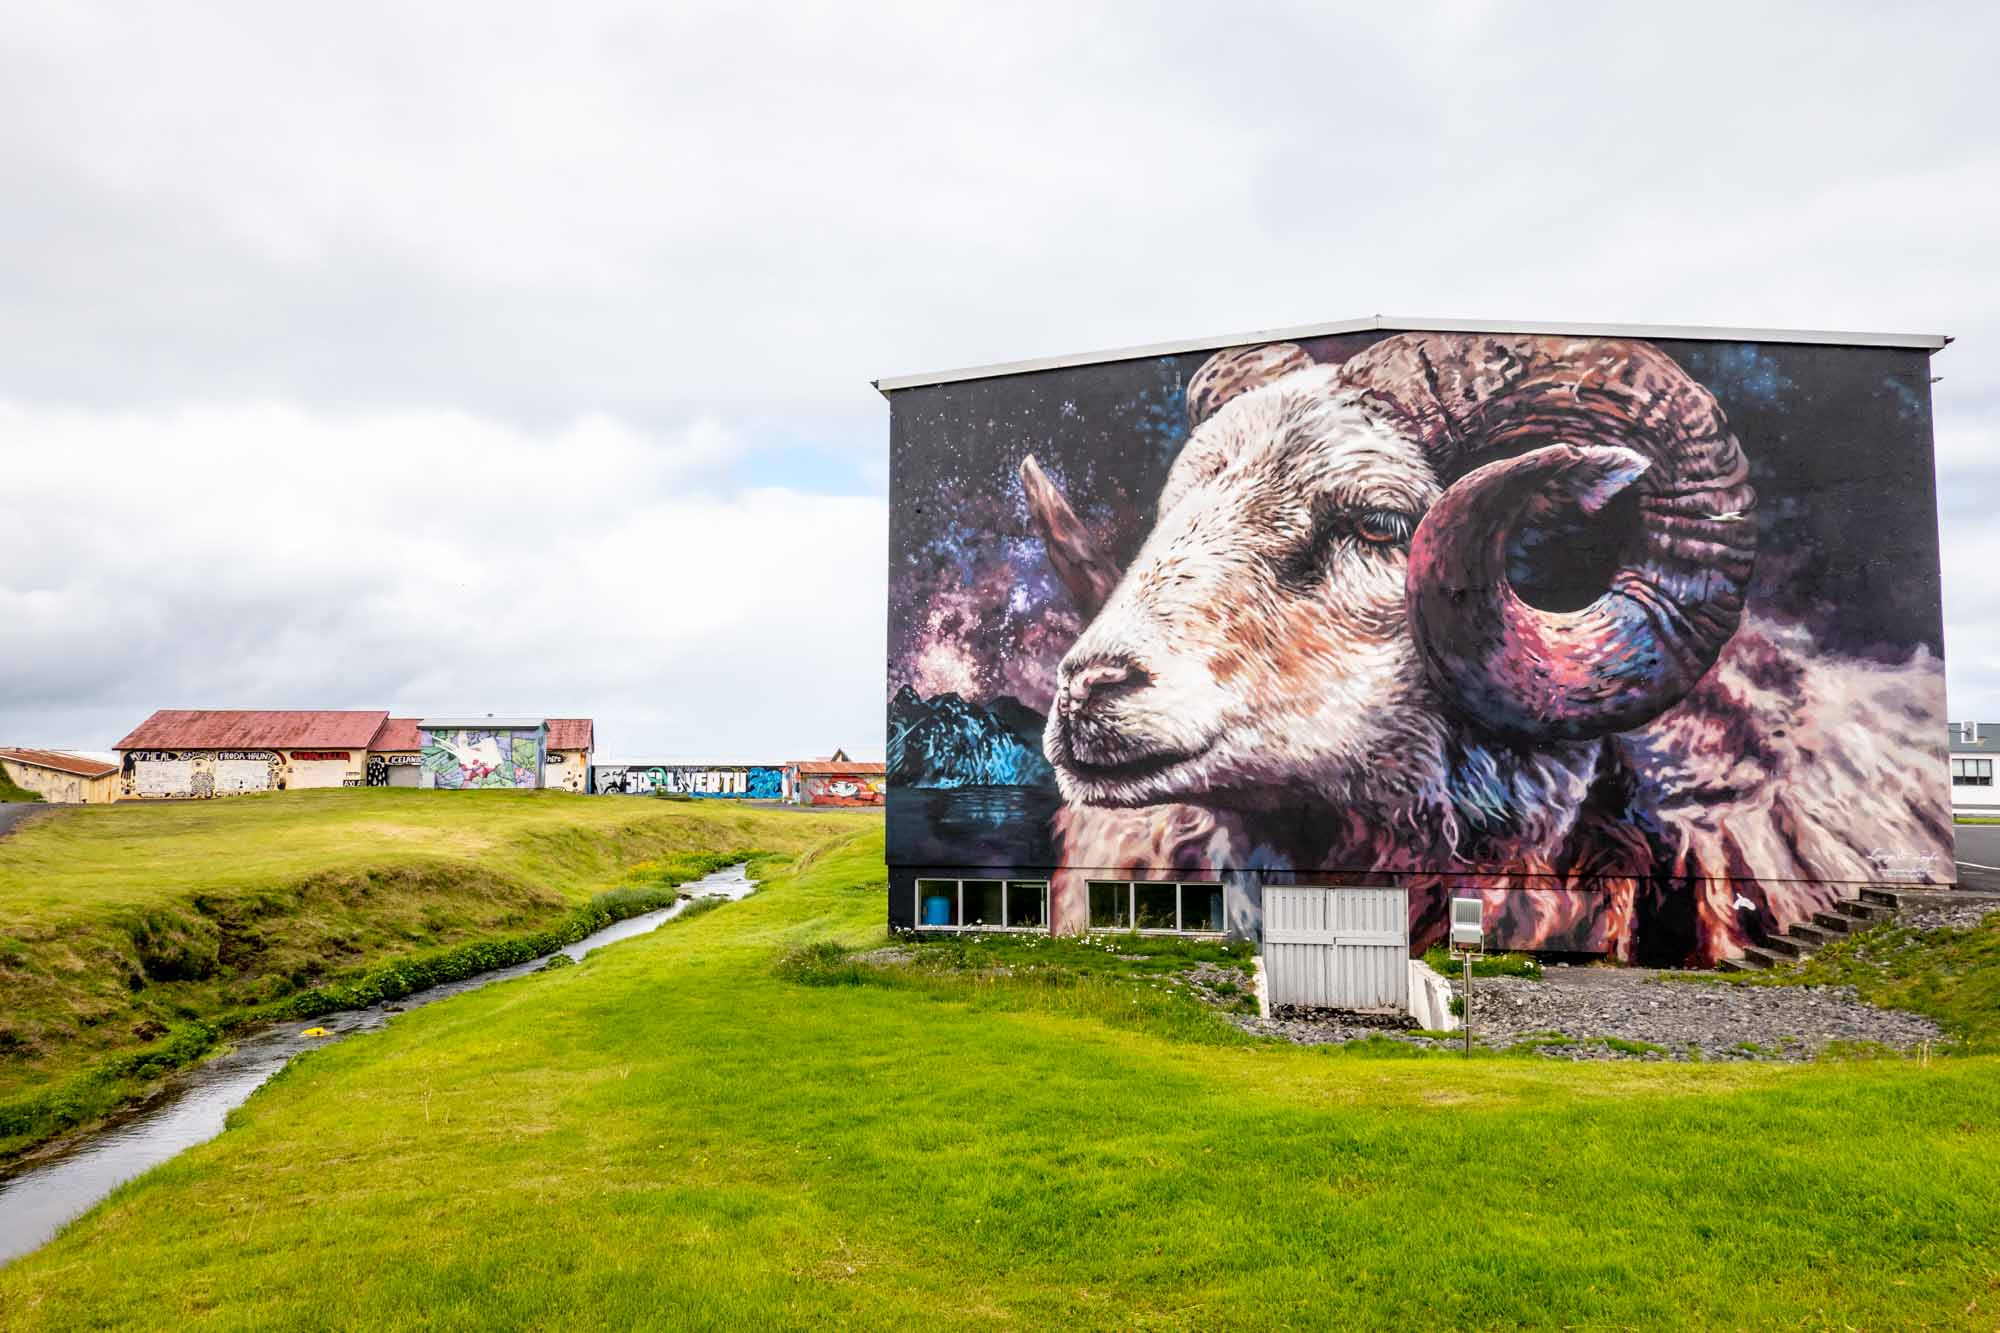 Mural of a ram with horns on side of a building